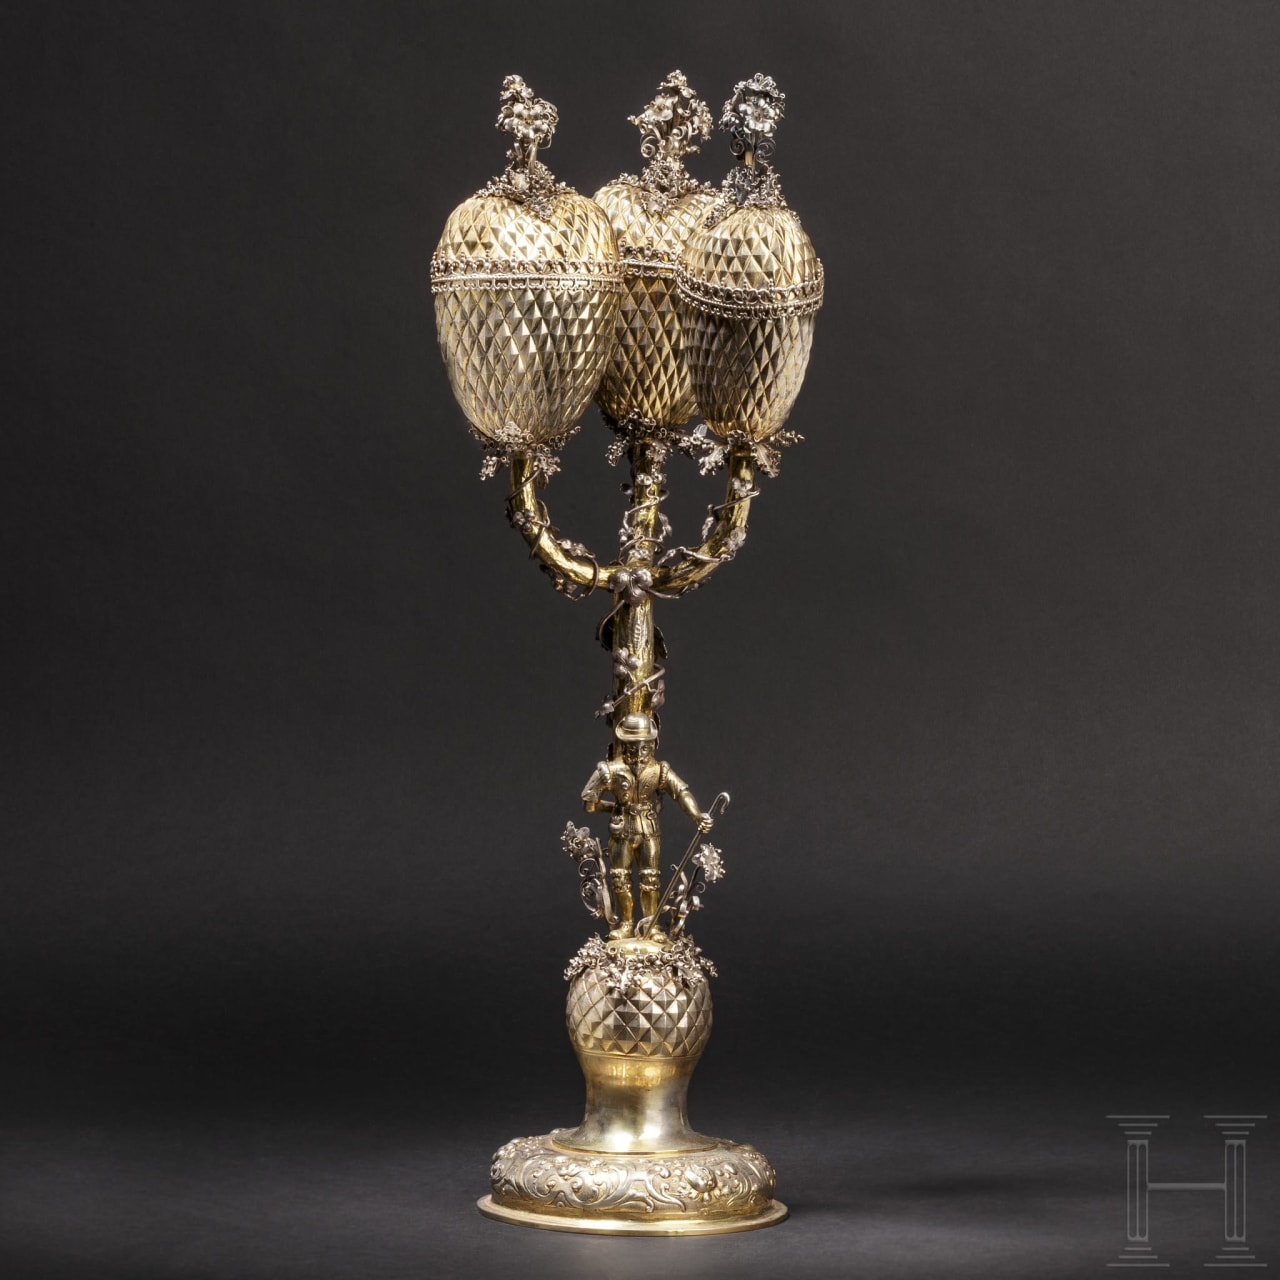 A German three-branch pineapple trophy set with diamonds, circa 1900